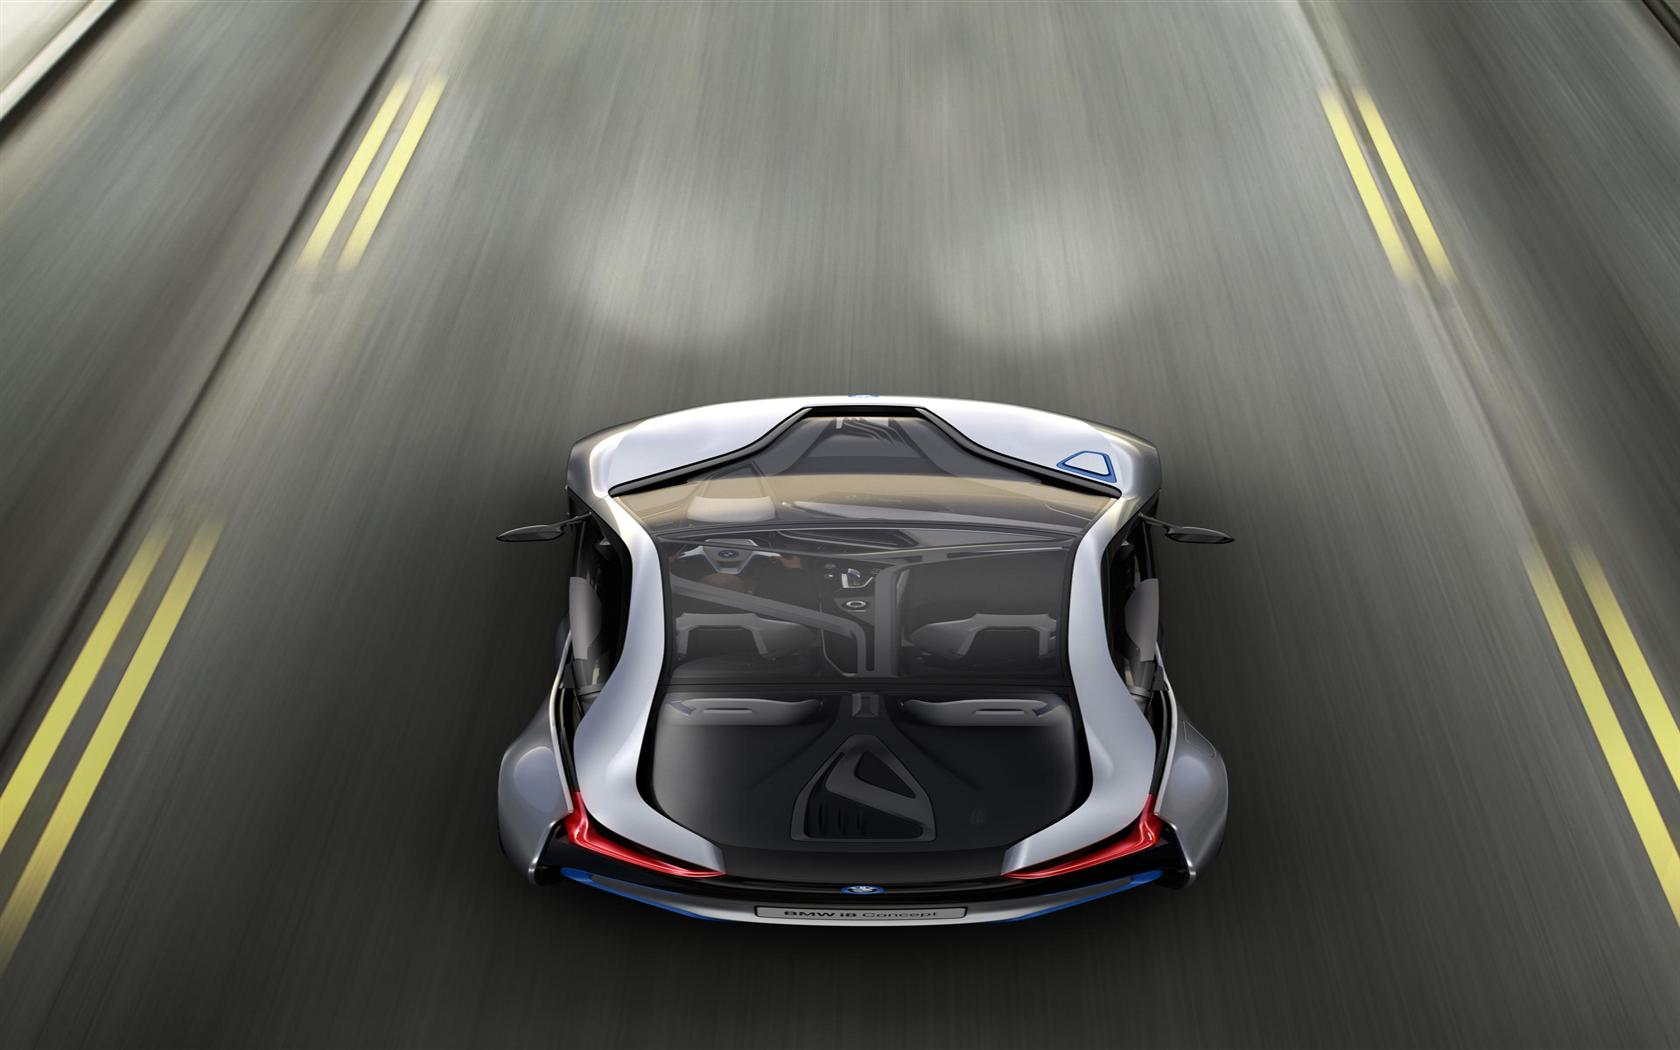 2012 Bmw I8 Concept Image Photo 91 Of 97